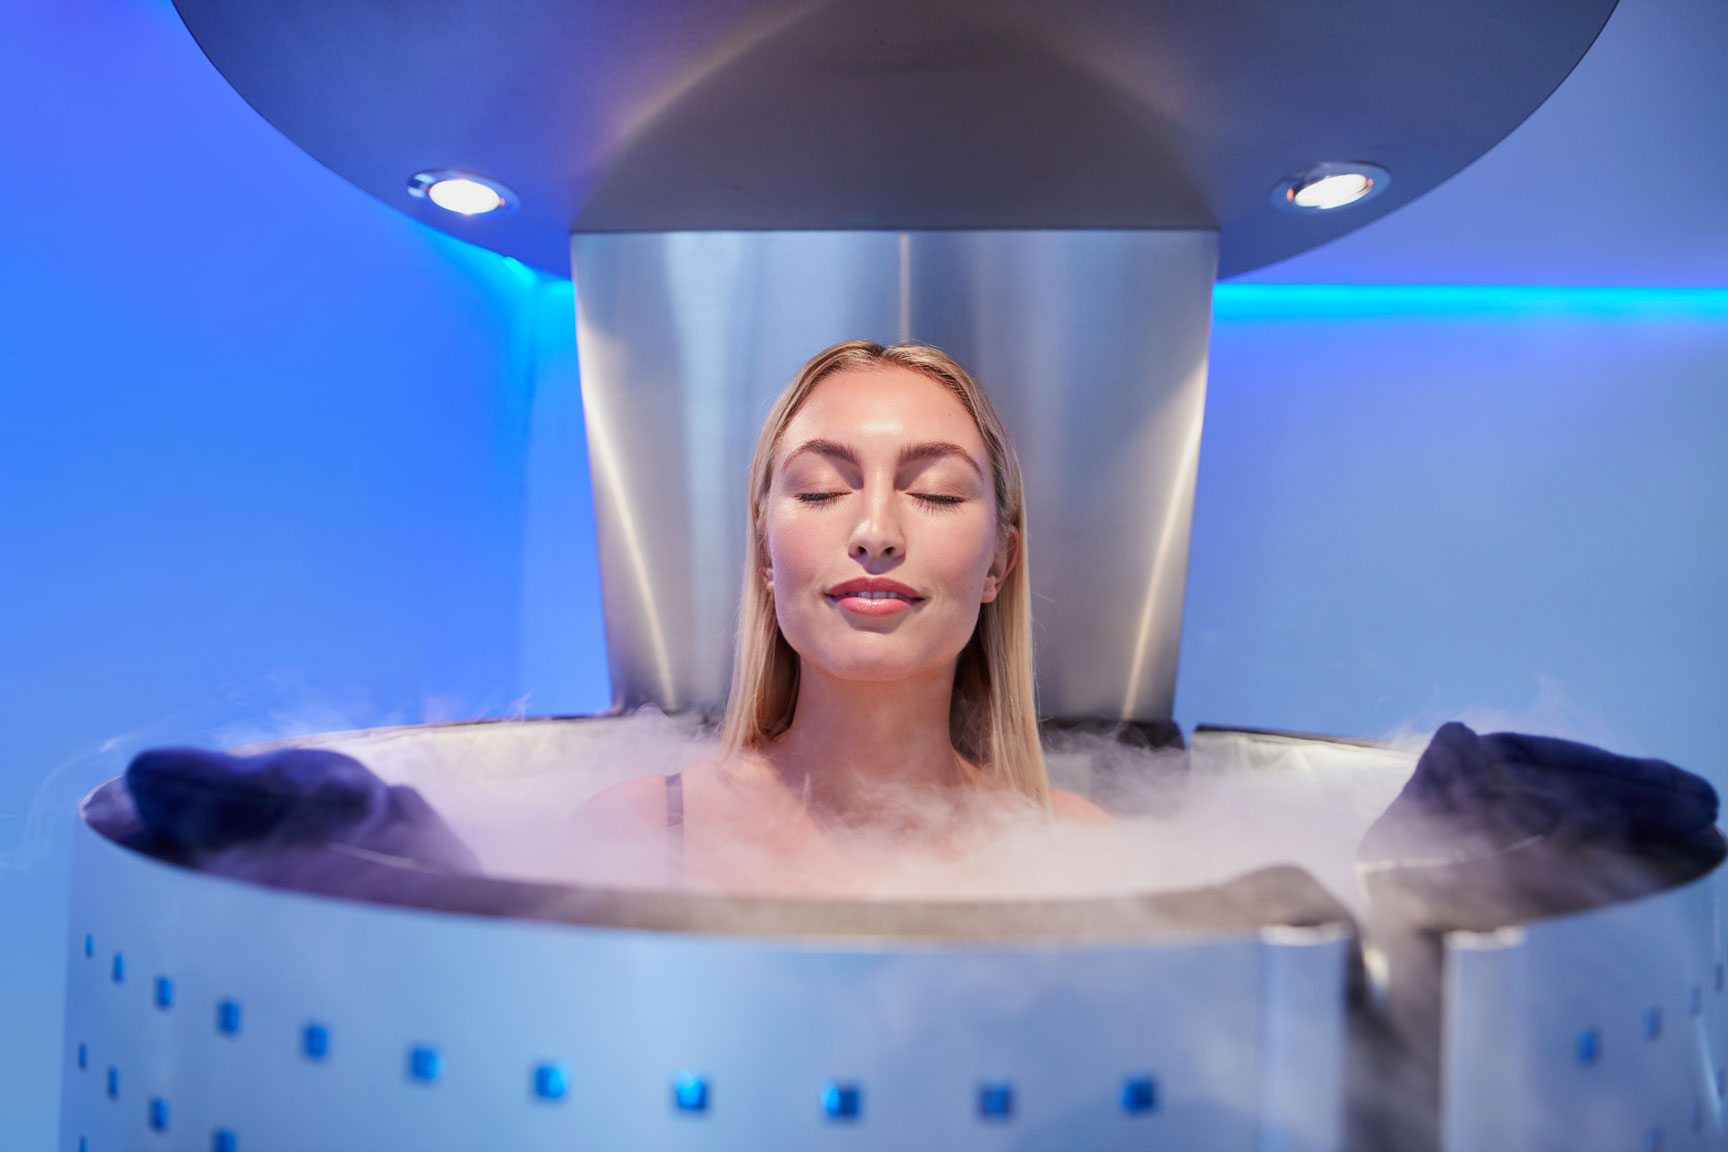 Innovative Beauty Treatments to Help You See the Best Version of Yourself